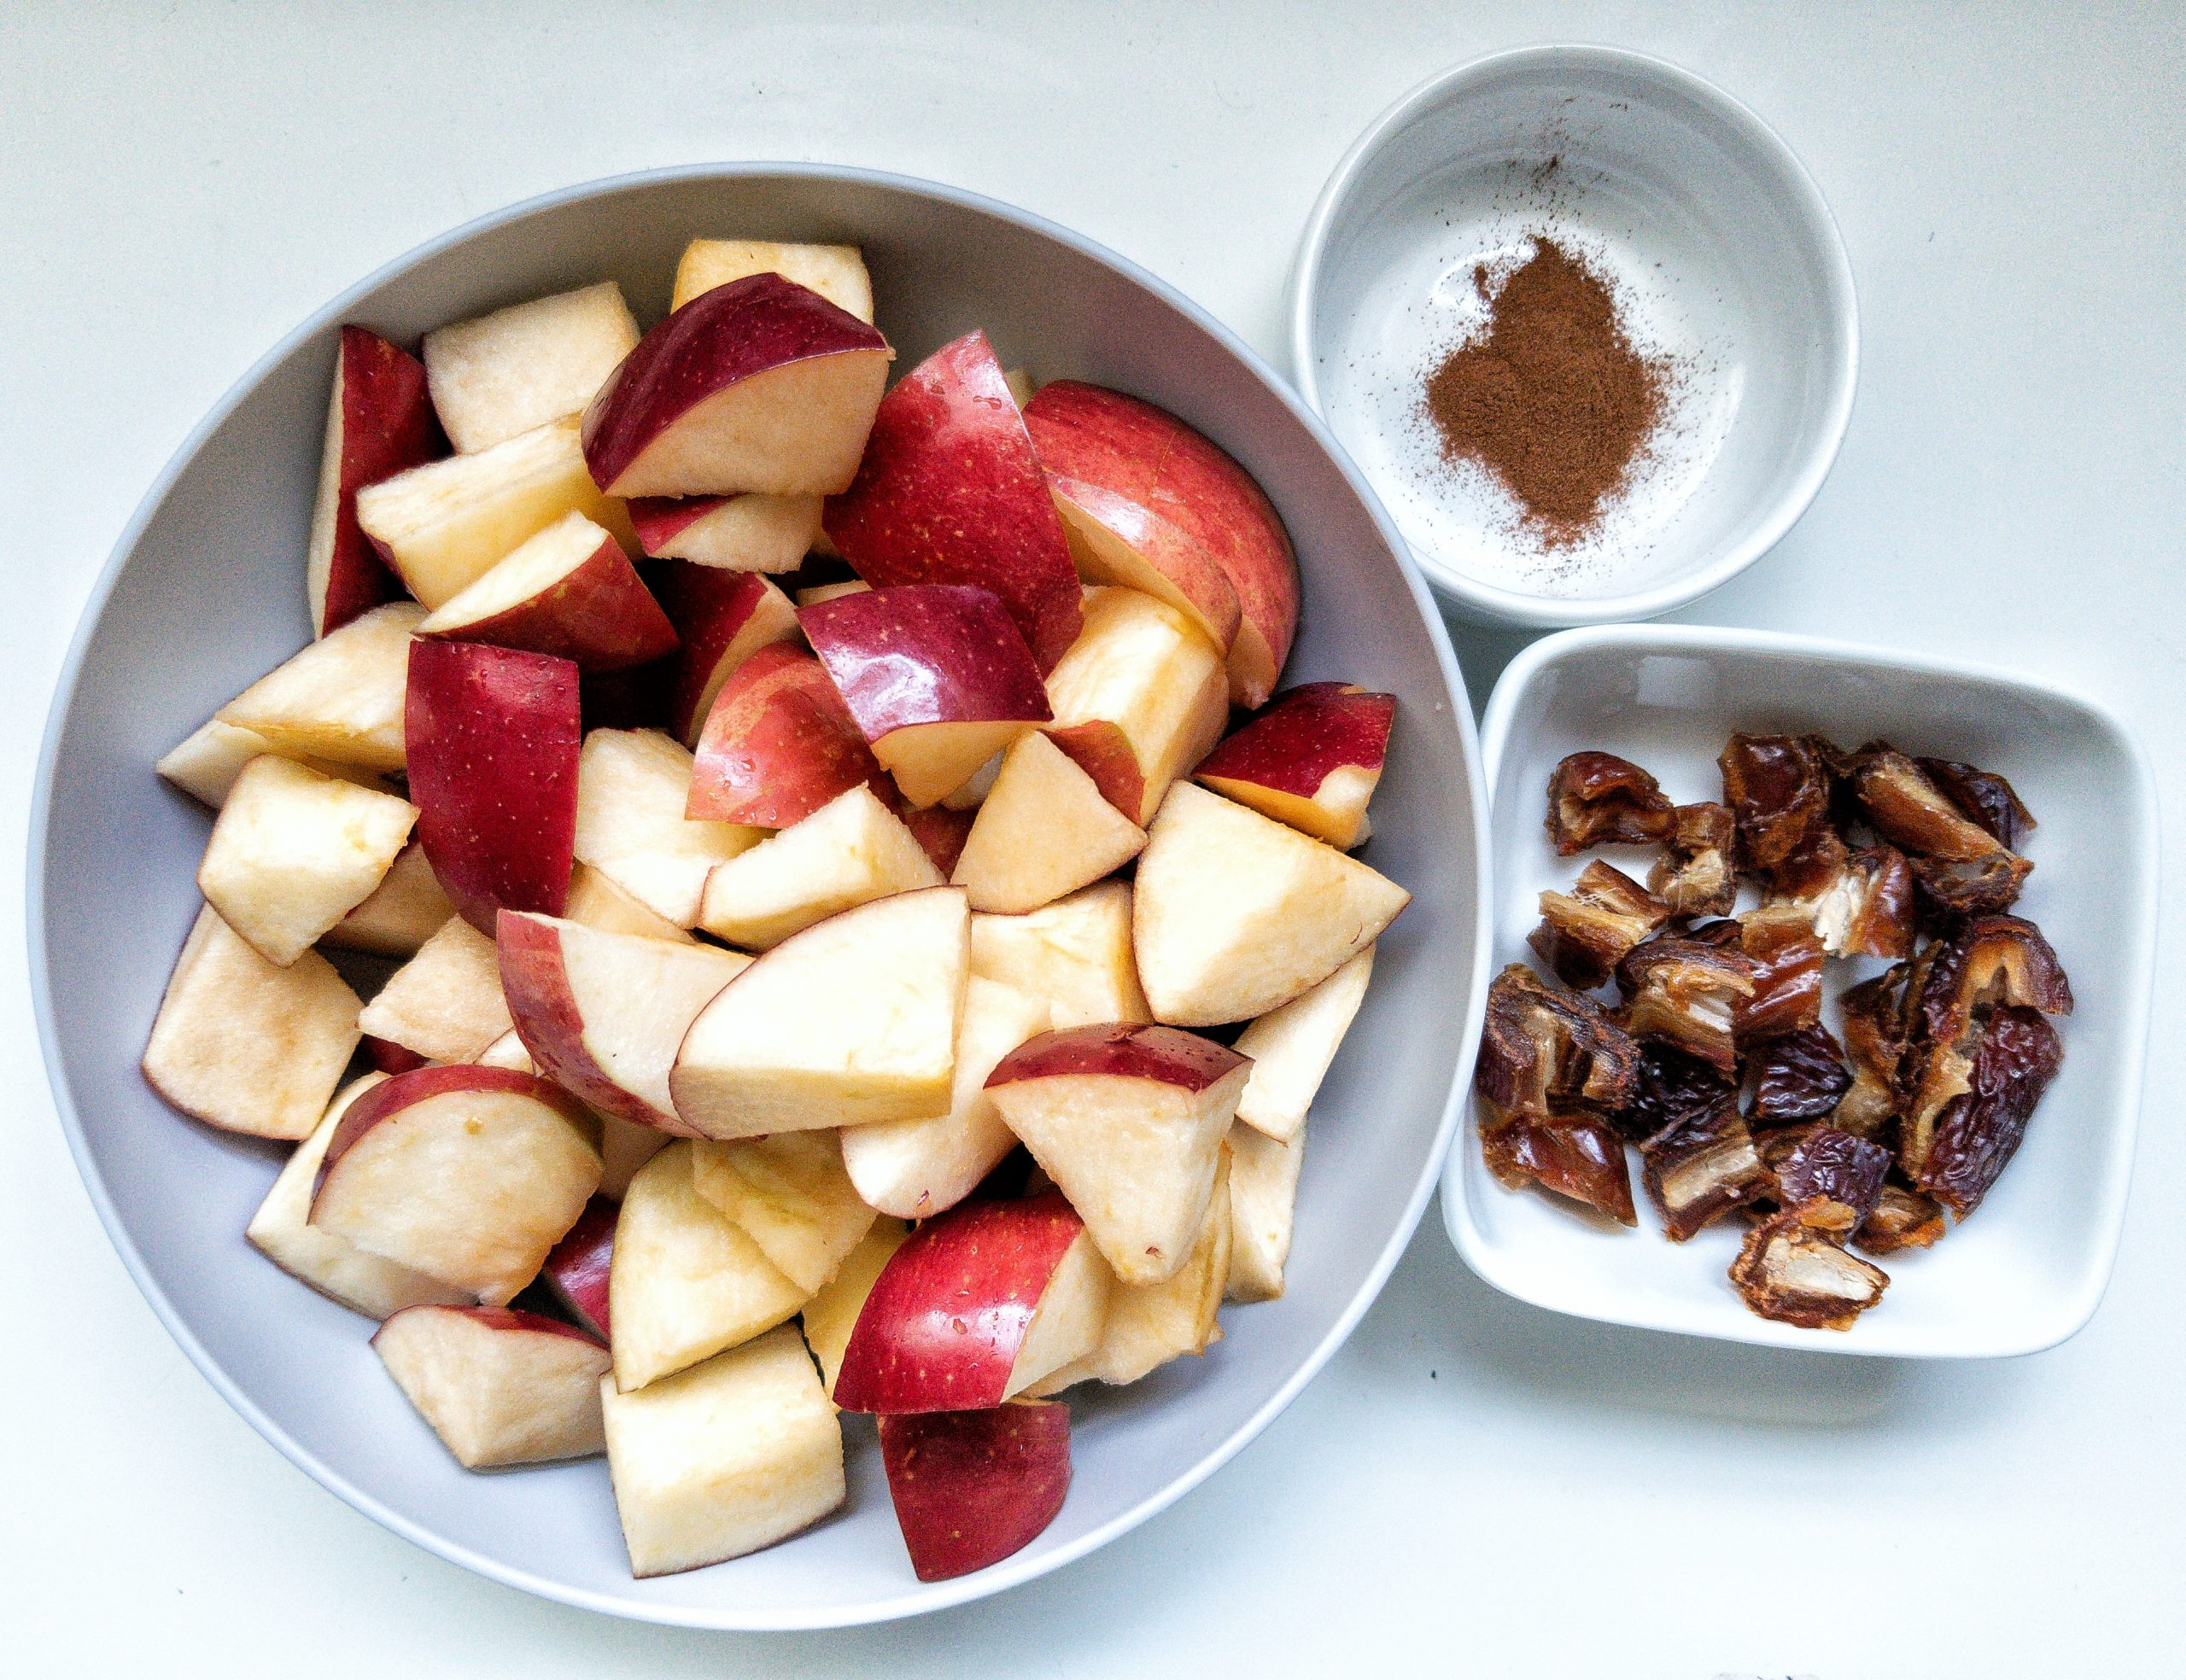 Chopped apples in a bowl with a side of dates and ground cinnamon